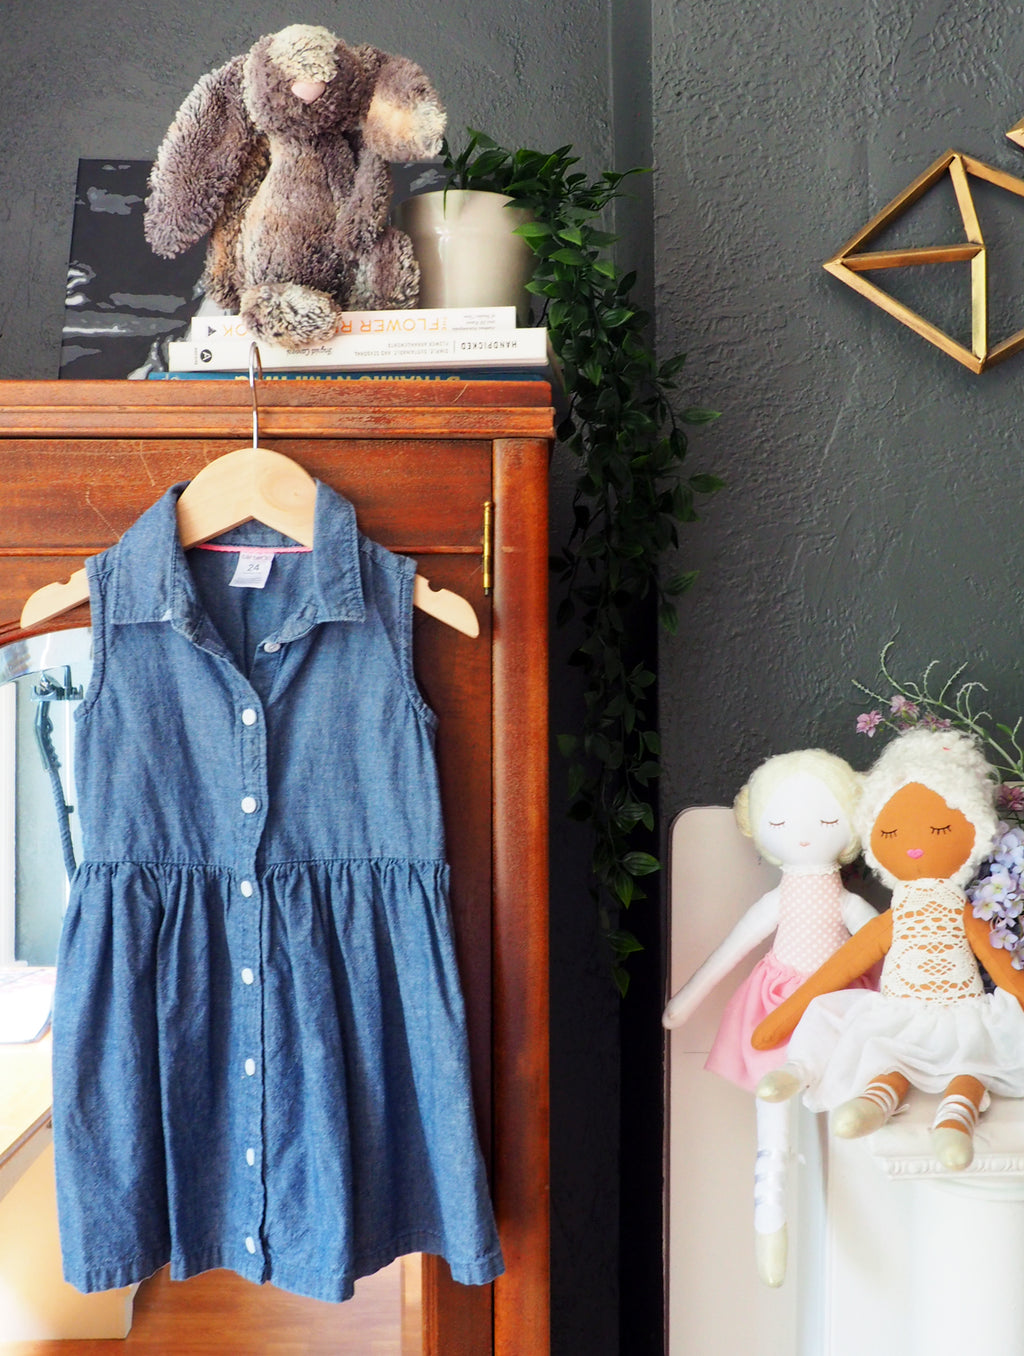 2T Girls Chambray Shirt Dress